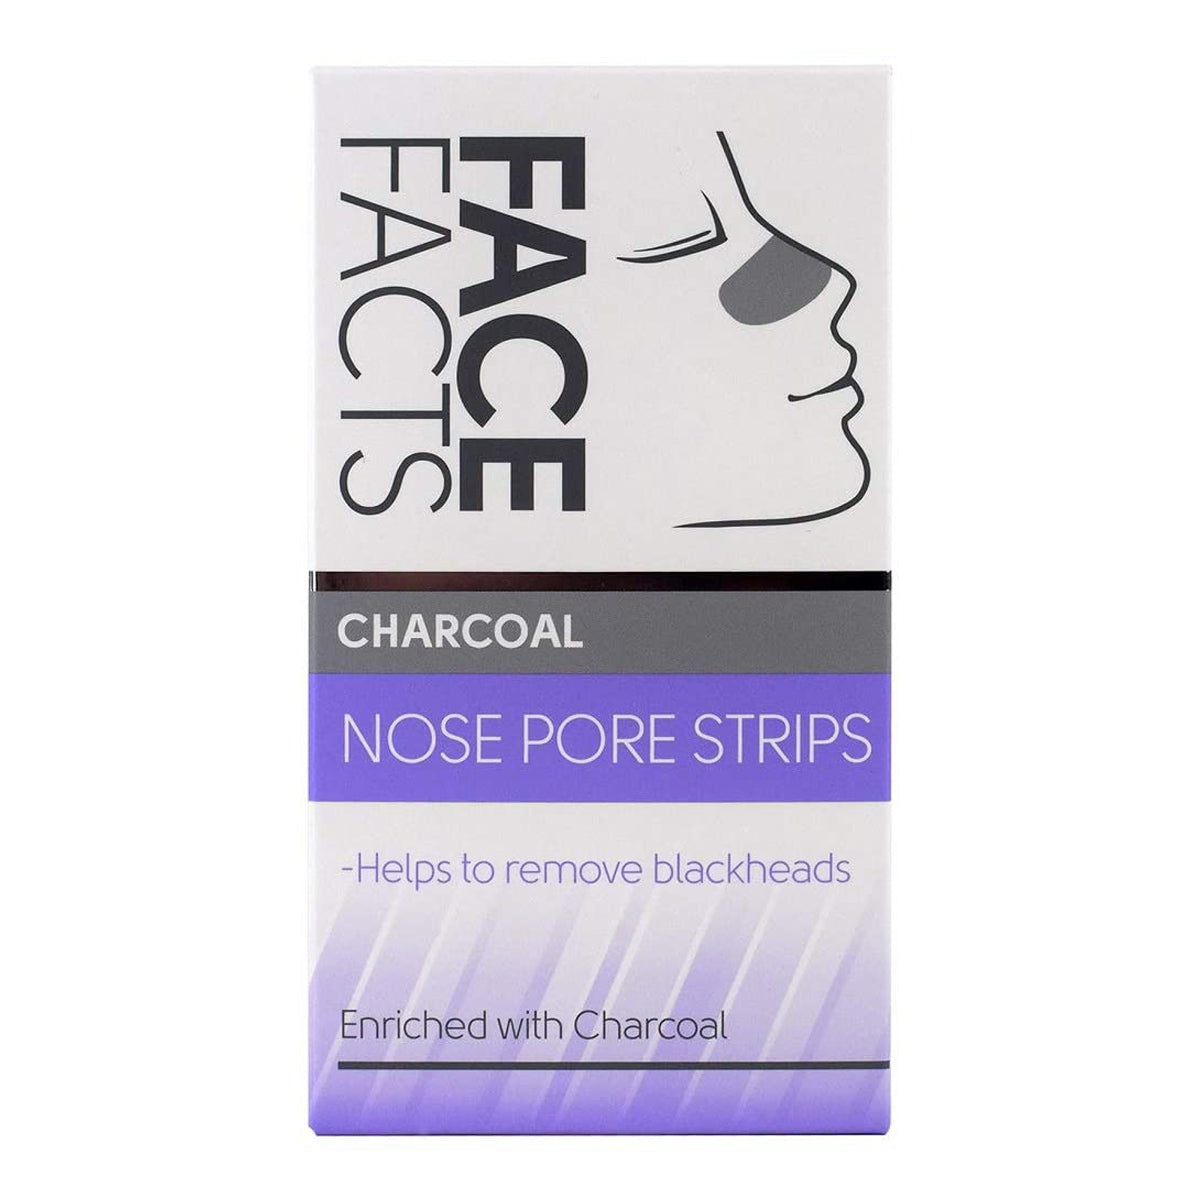 Nose Pore Strips - Charcoal